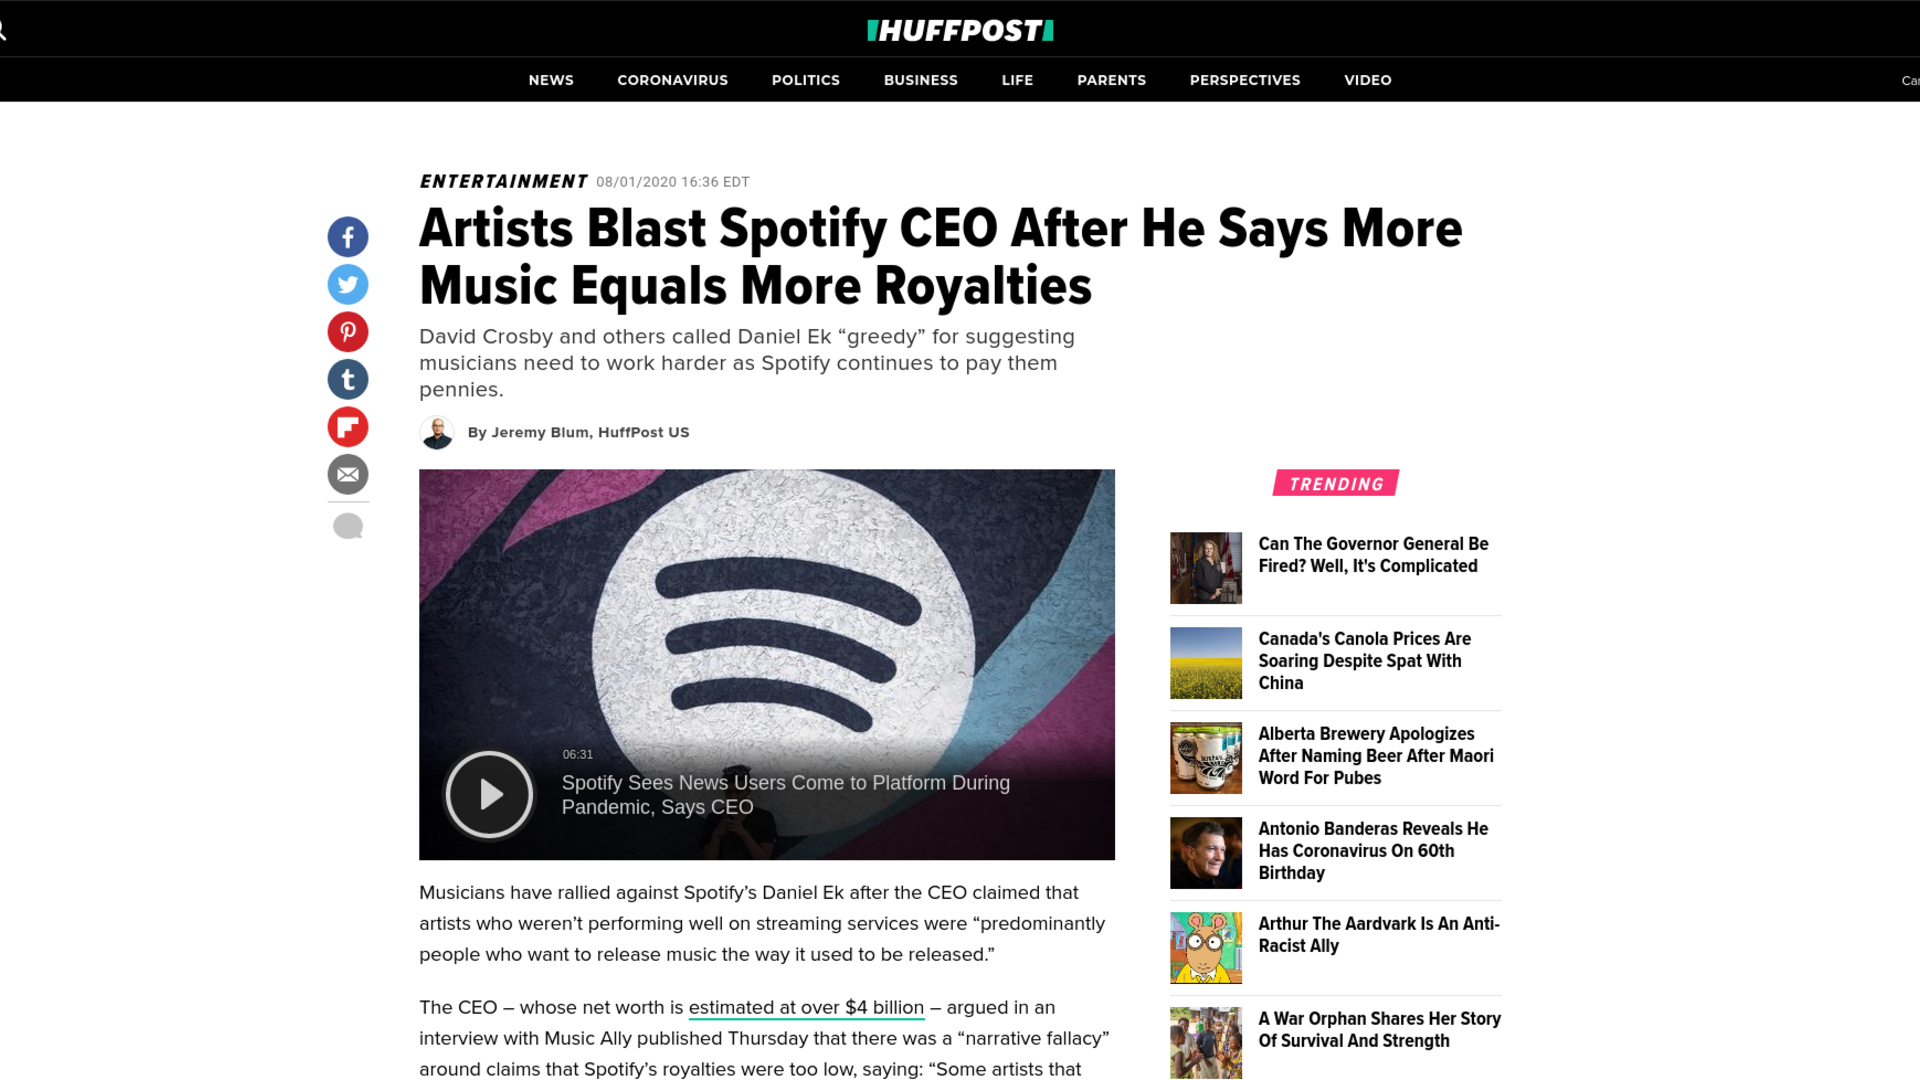 Fairness Rocks News Artists Blast Spotify CEO After He Says More Music Equals More Royalties